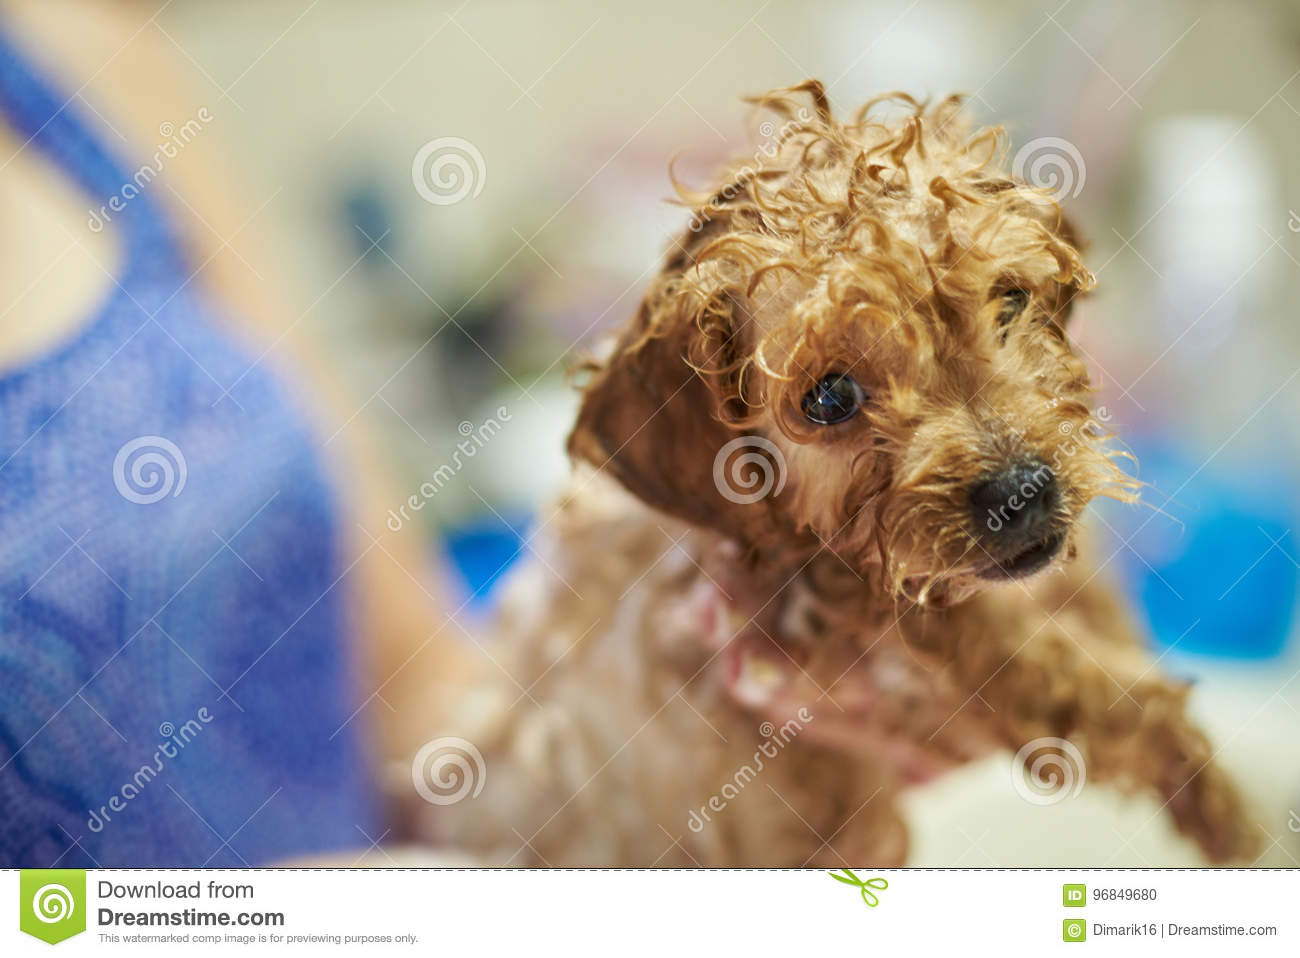 Funny Wet Poodle Puppy Dog Stock Photo Image Of Fluffy 96849680